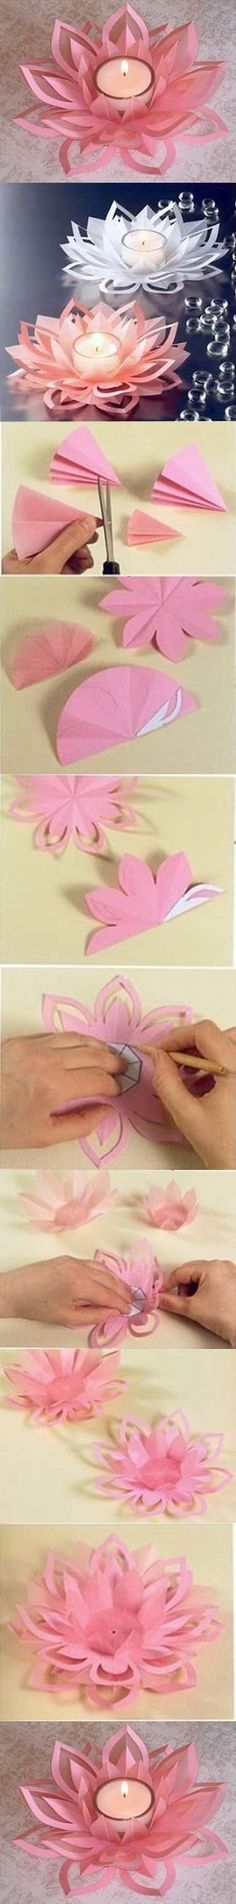 DIY Paper Lotus Candlestick 2 tutorial